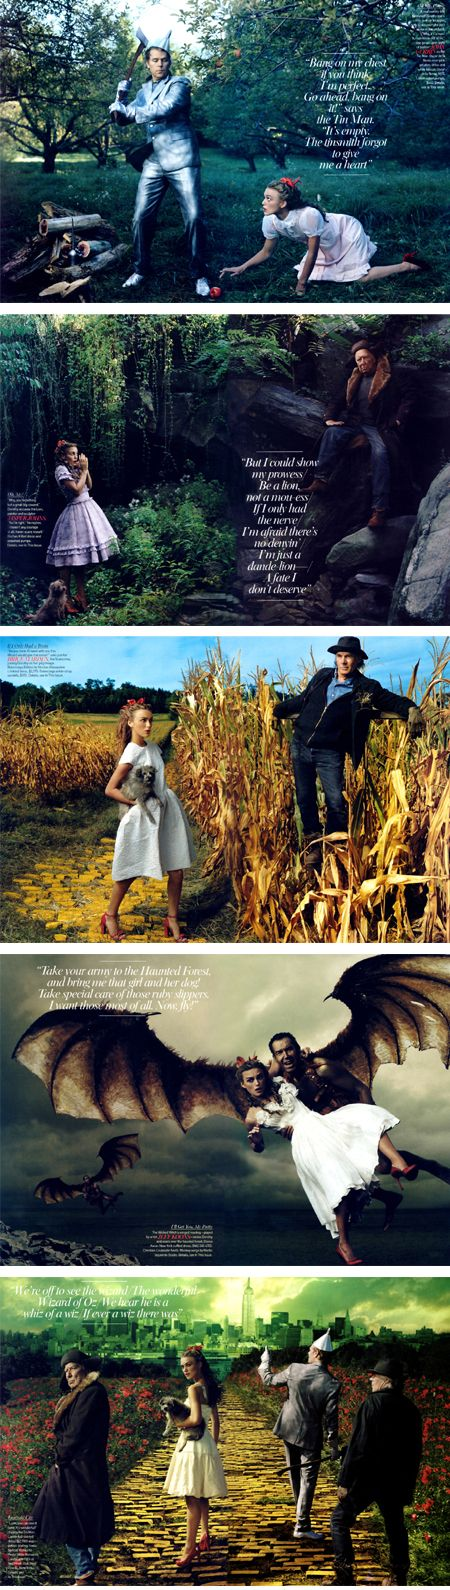 Art meets Fashion. Photographs by Annie Leibovitz. Keira Knightley plays Dorothy, John Currin as the Tin Man, Jasper Johns as the Lion, Brice Marden is the scarecrow, and Jeff Koons is the flying monkey (of course).